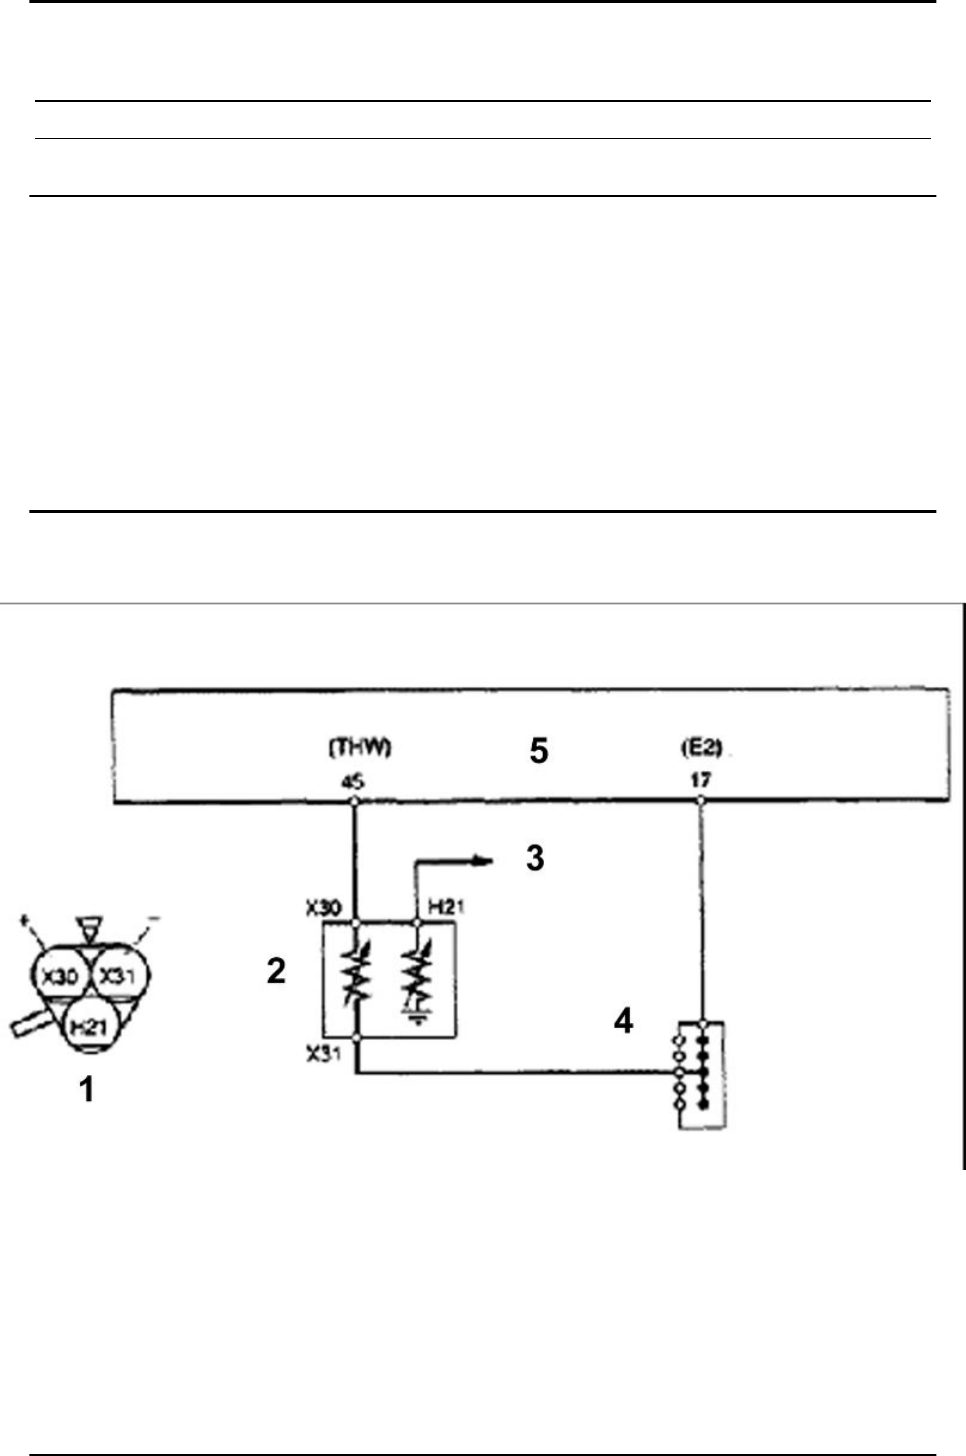 medium resolution of daihatsu hijet wiring diagram wiring library daihatsu hijet wiring diagram